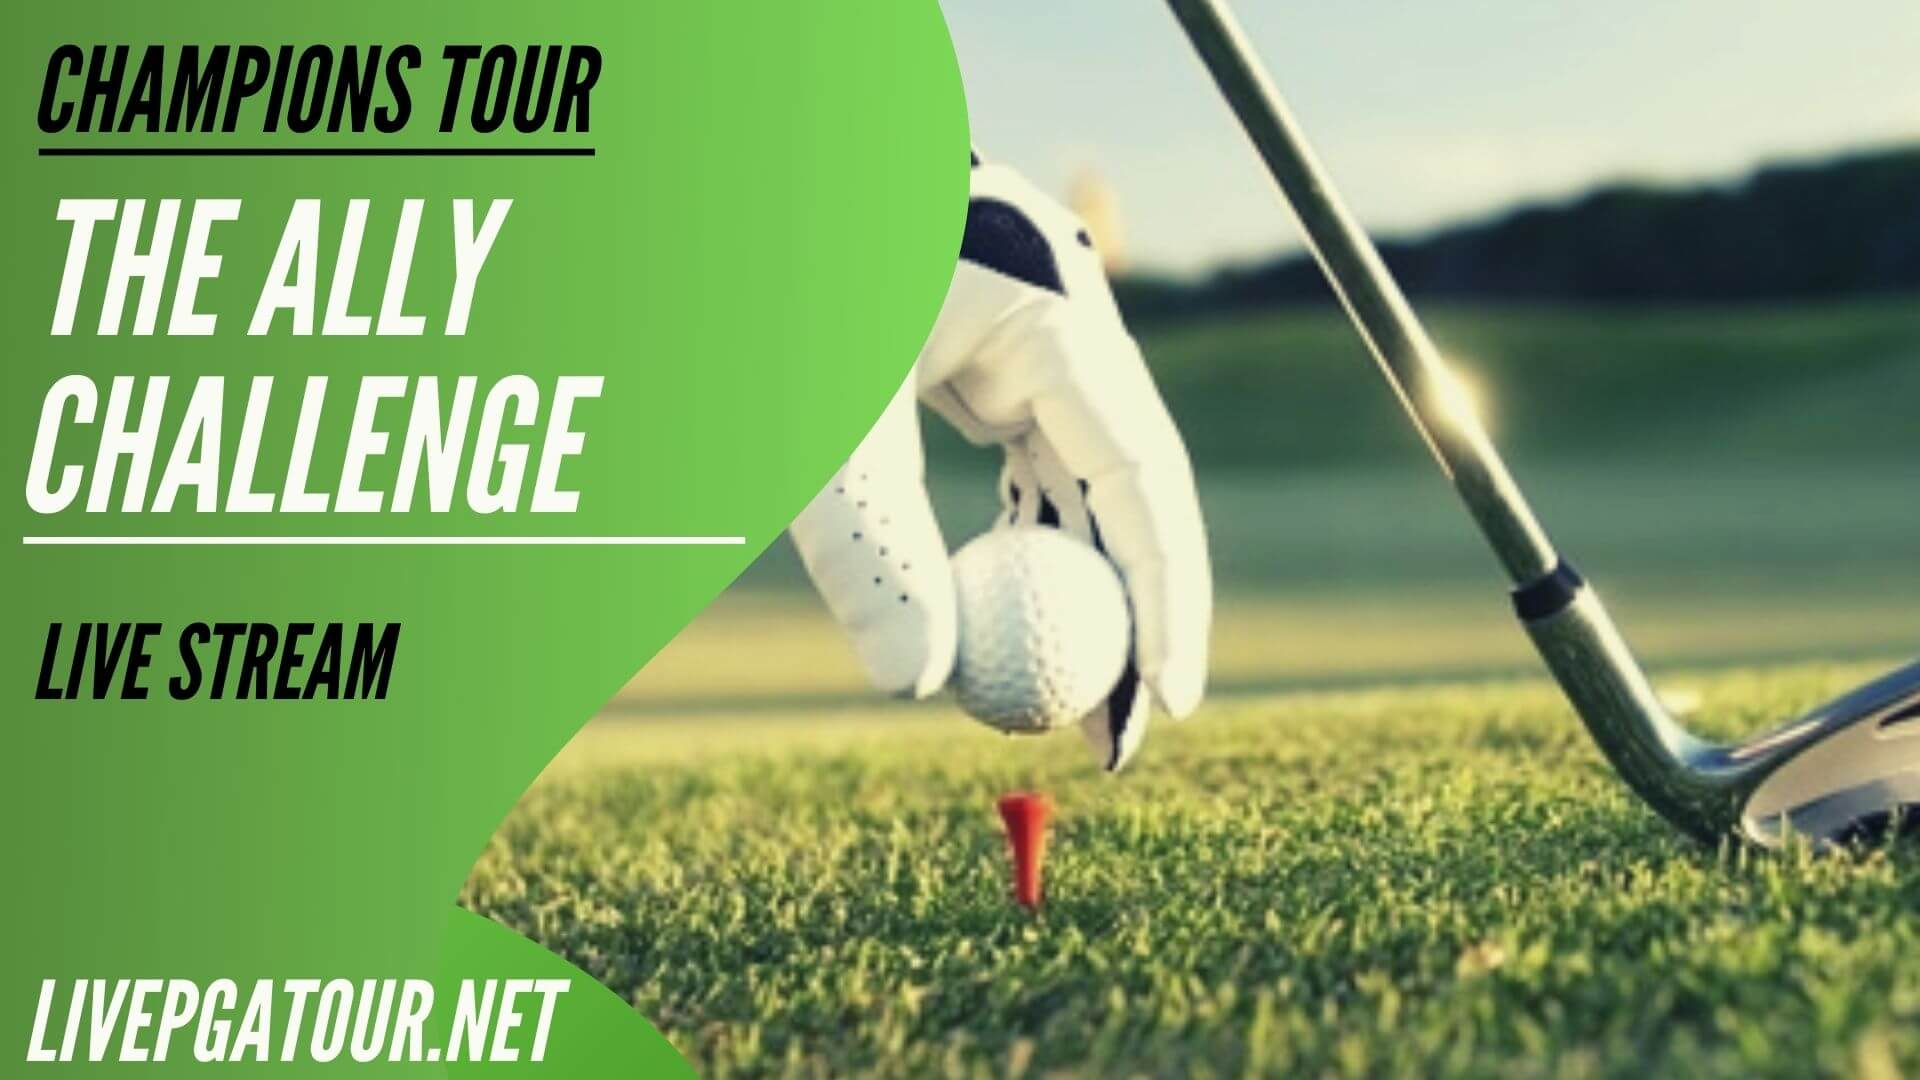 The Ally Challenge Live Stream 2021: Champions Tour Day 1